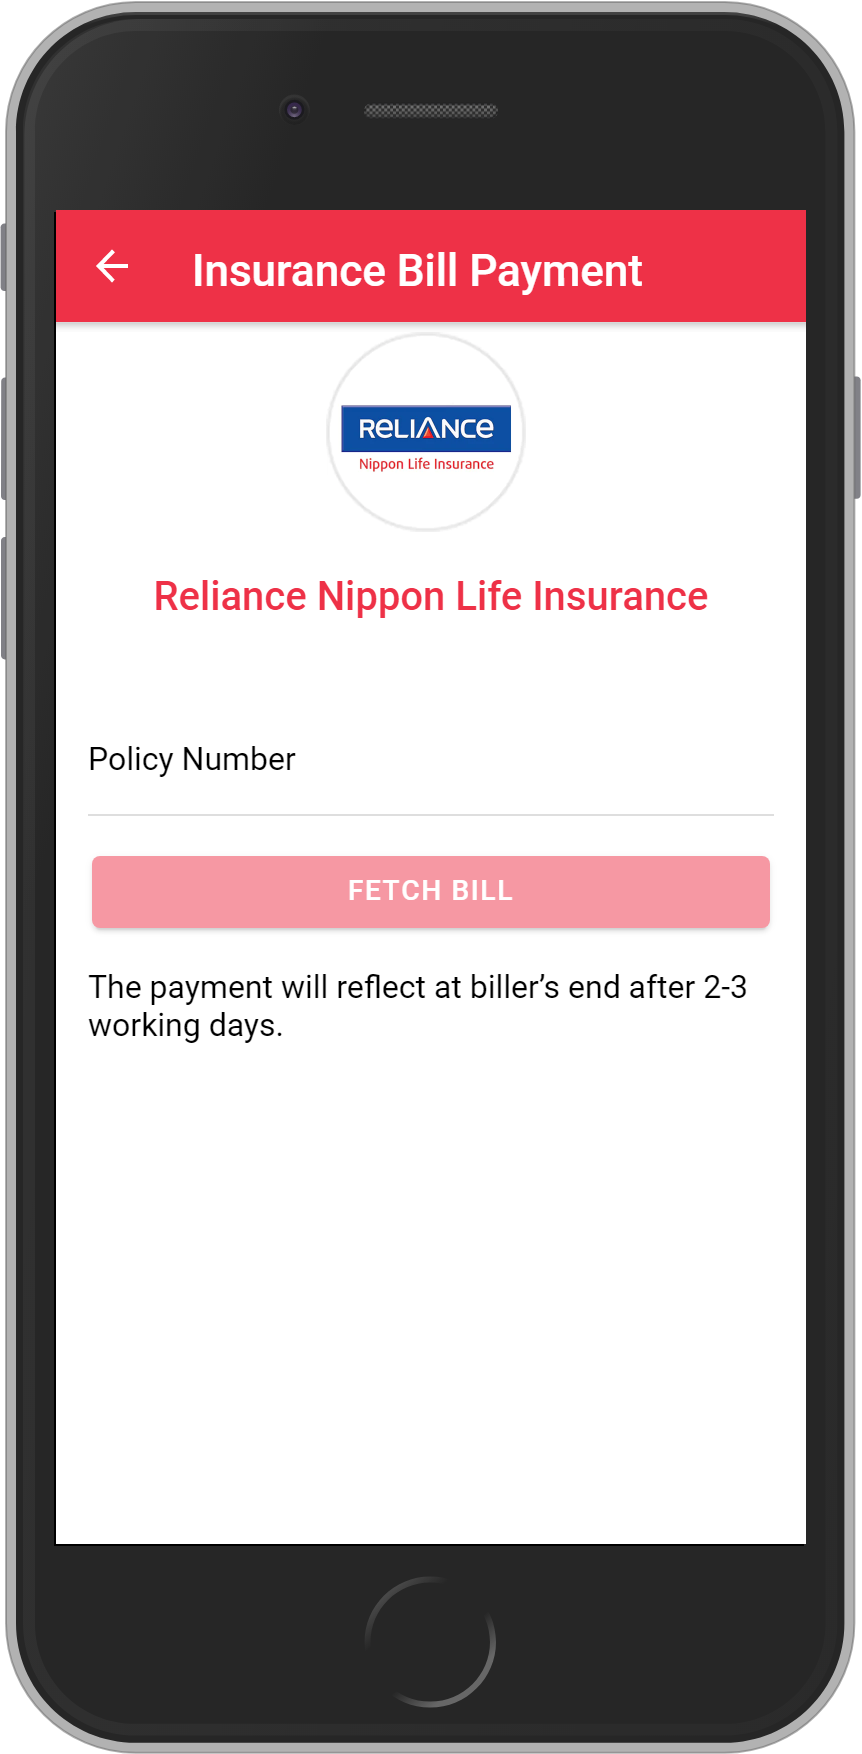 Get UNLIMITED <b>0.10%</b> CASHBACK on Reliance Nippon Life Insurance Payment.